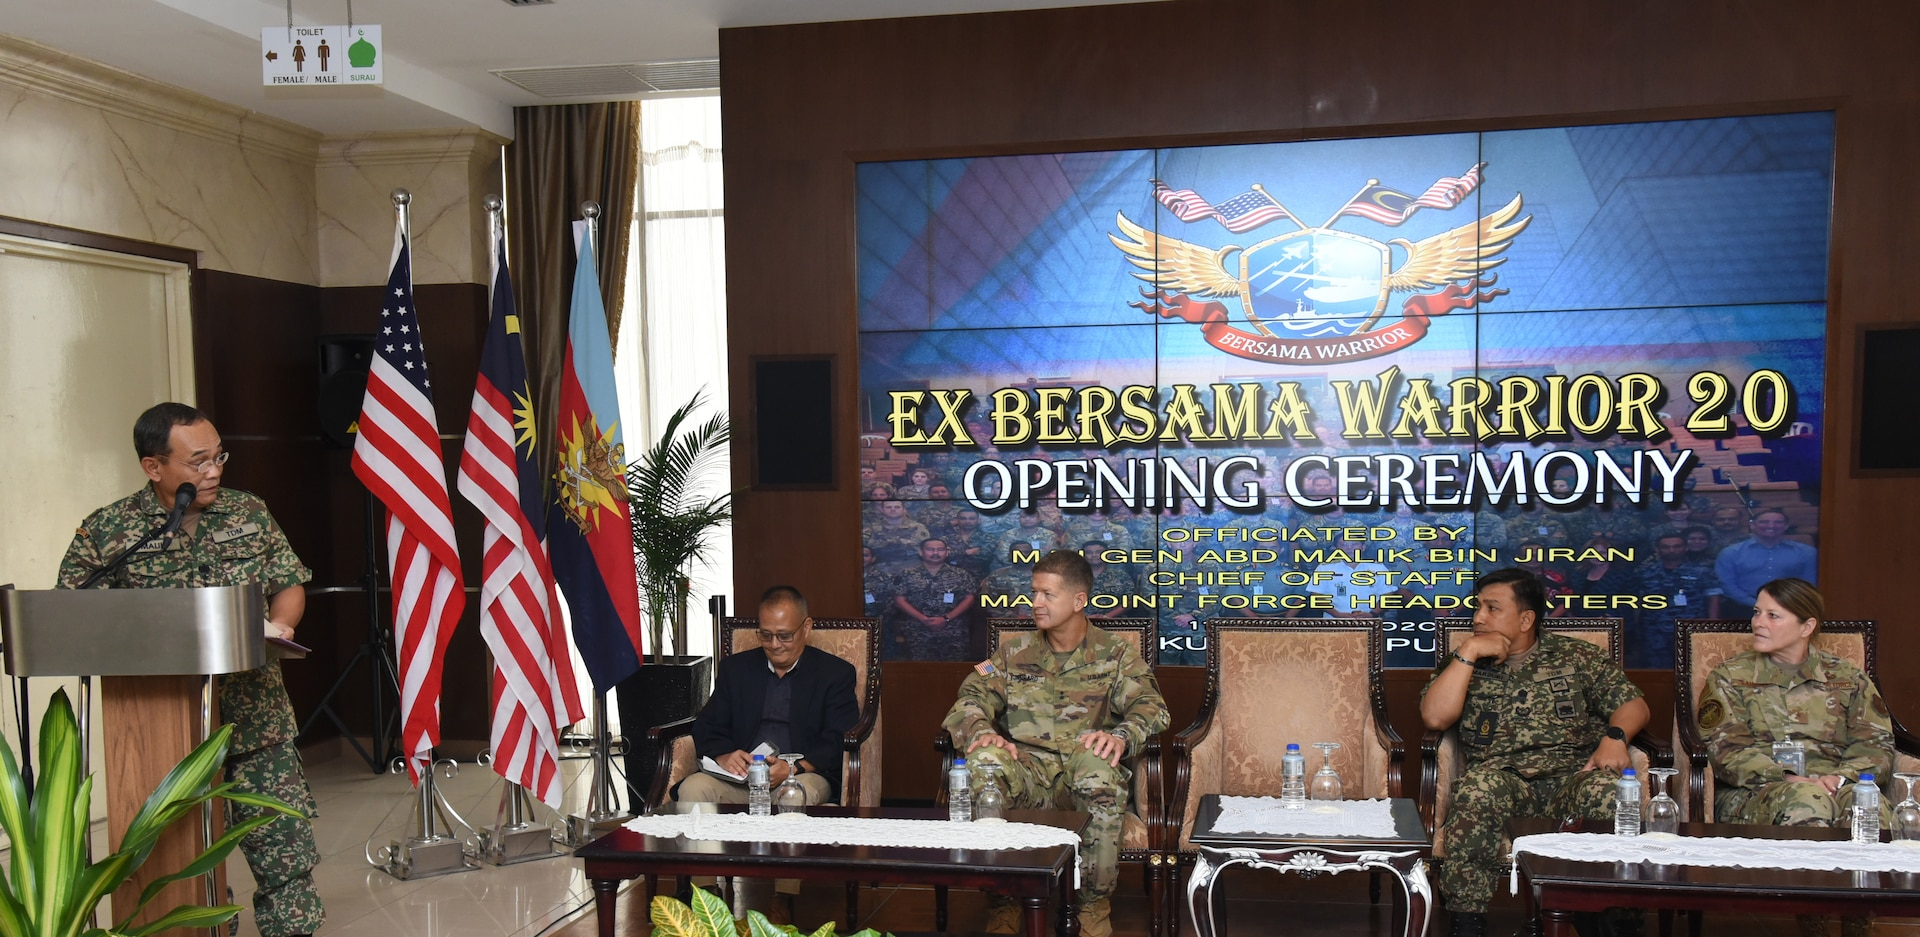 Malaysia Armed Forces Joint Force Headquarters Chief of Staff Maj. Gen. Abd Malik bin Jiran officiates the opening ceremony of Bersama Warrior March 11, 2020, at the Malaysia Armed Forces Joint Force Headquarters in Kuala Lumpur. Also pictured, left to right, is U.S. Army U.S. Indo-Pacific Command, Pacific Warfighting Center Director Paul Tamaribuchi; 25th Infantry Division Commander Maj.Gen.James B. Jarrard; 12th Malaysian Infantry Brigade Commander Brig. Gen. Datuk Marzuki bin HJ Mokhtar; and Special Assistant to the Director of the Air National Guard Brig. Gen. Jill A. Lannan.